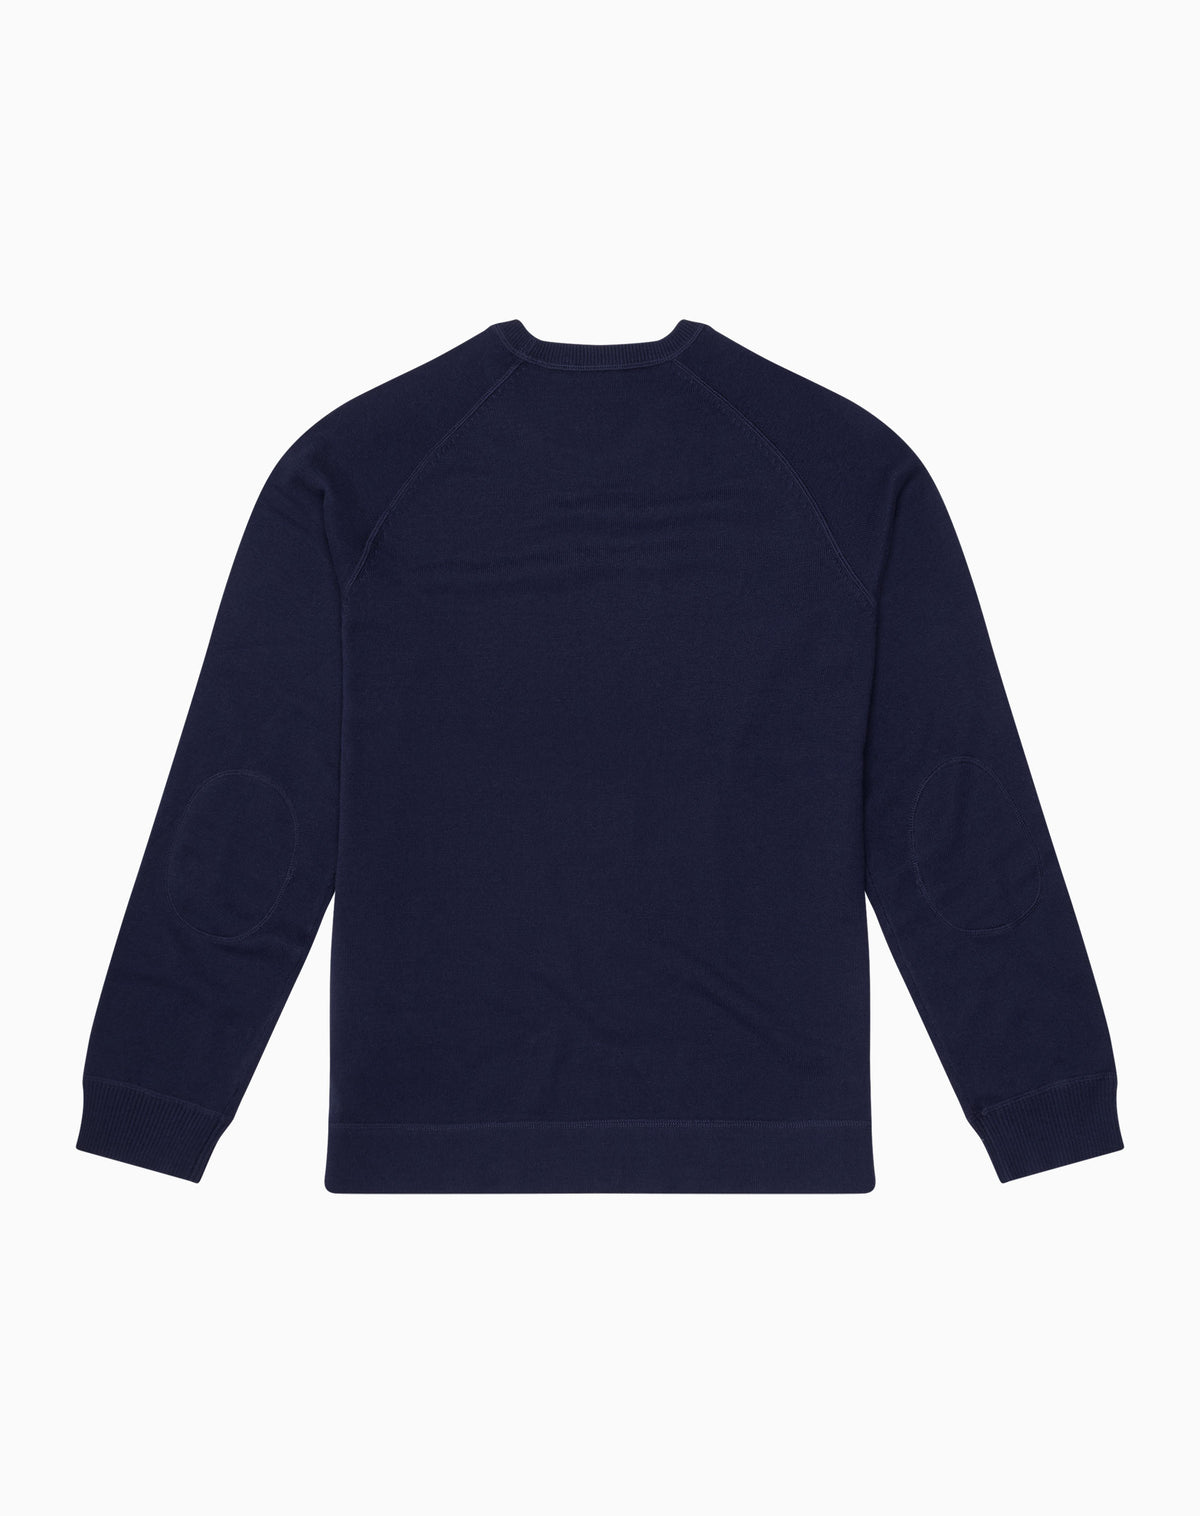 Contender Sweater in Navy